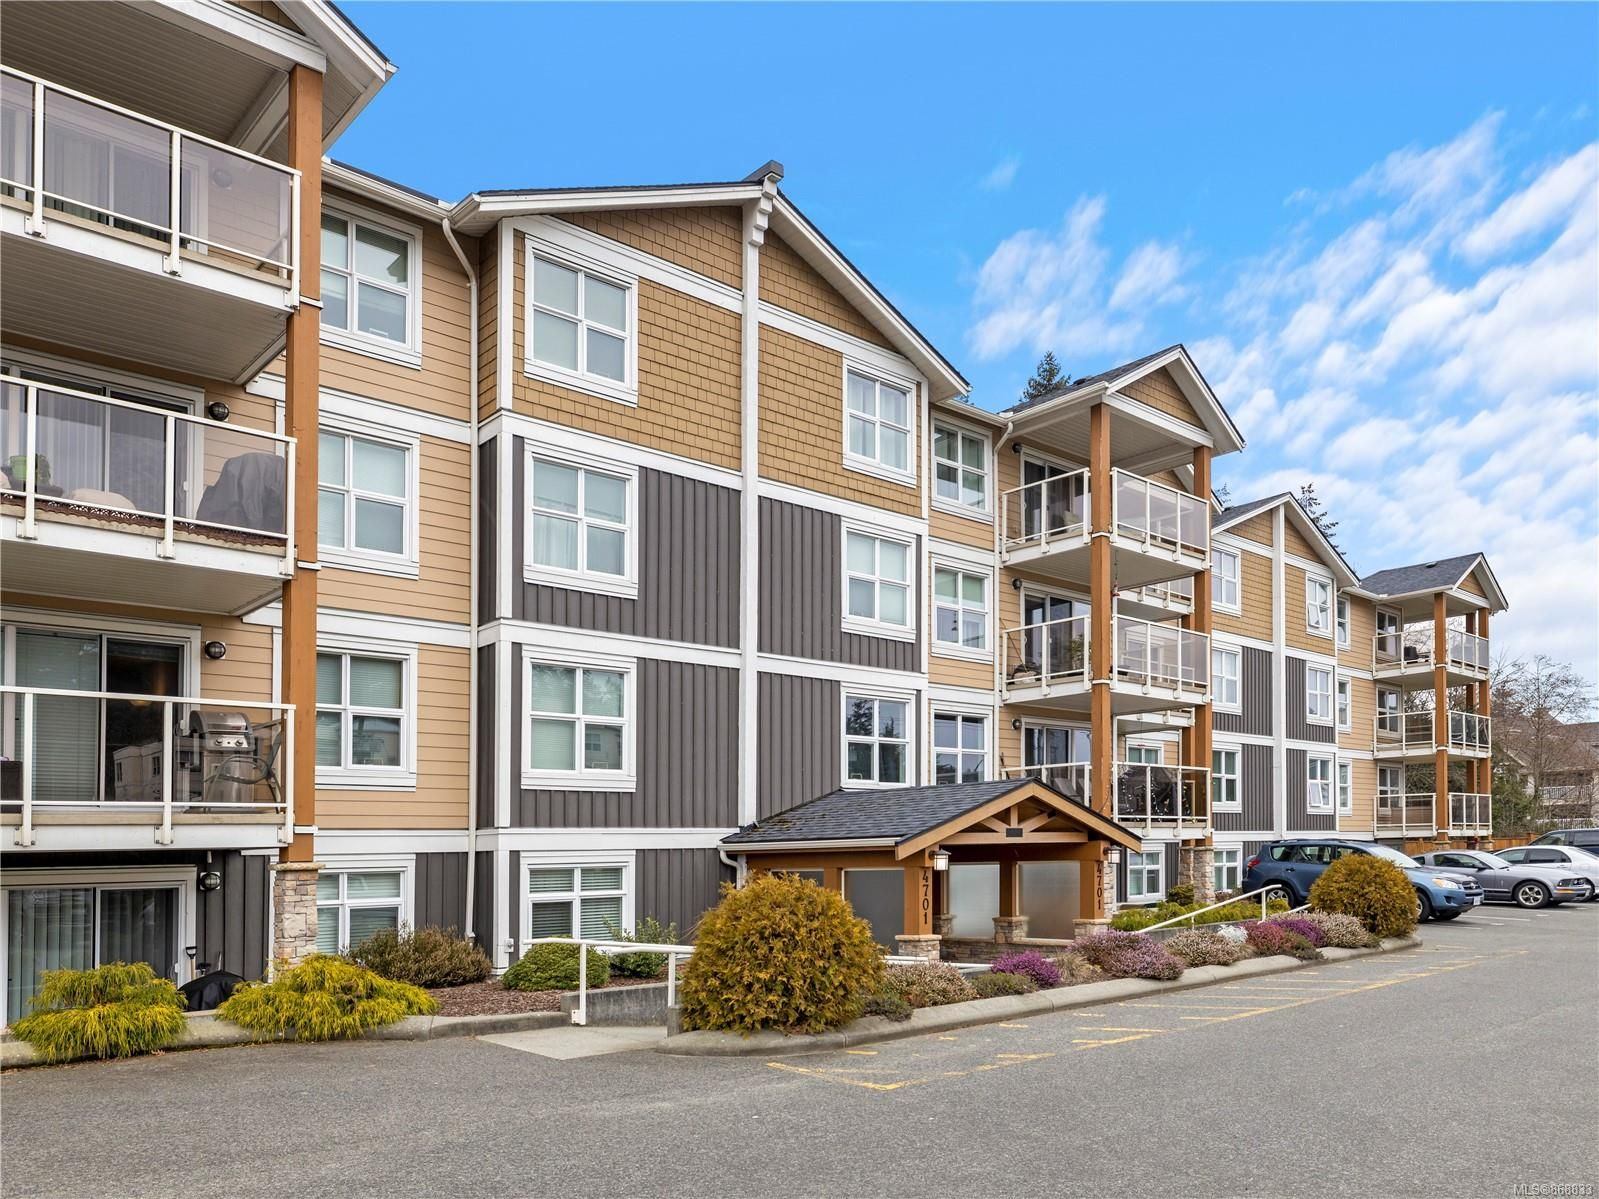 Main Photo: 304 4701 Uplands Dr in : Na North Nanaimo Condo for sale (Nanaimo)  : MLS®# 868833